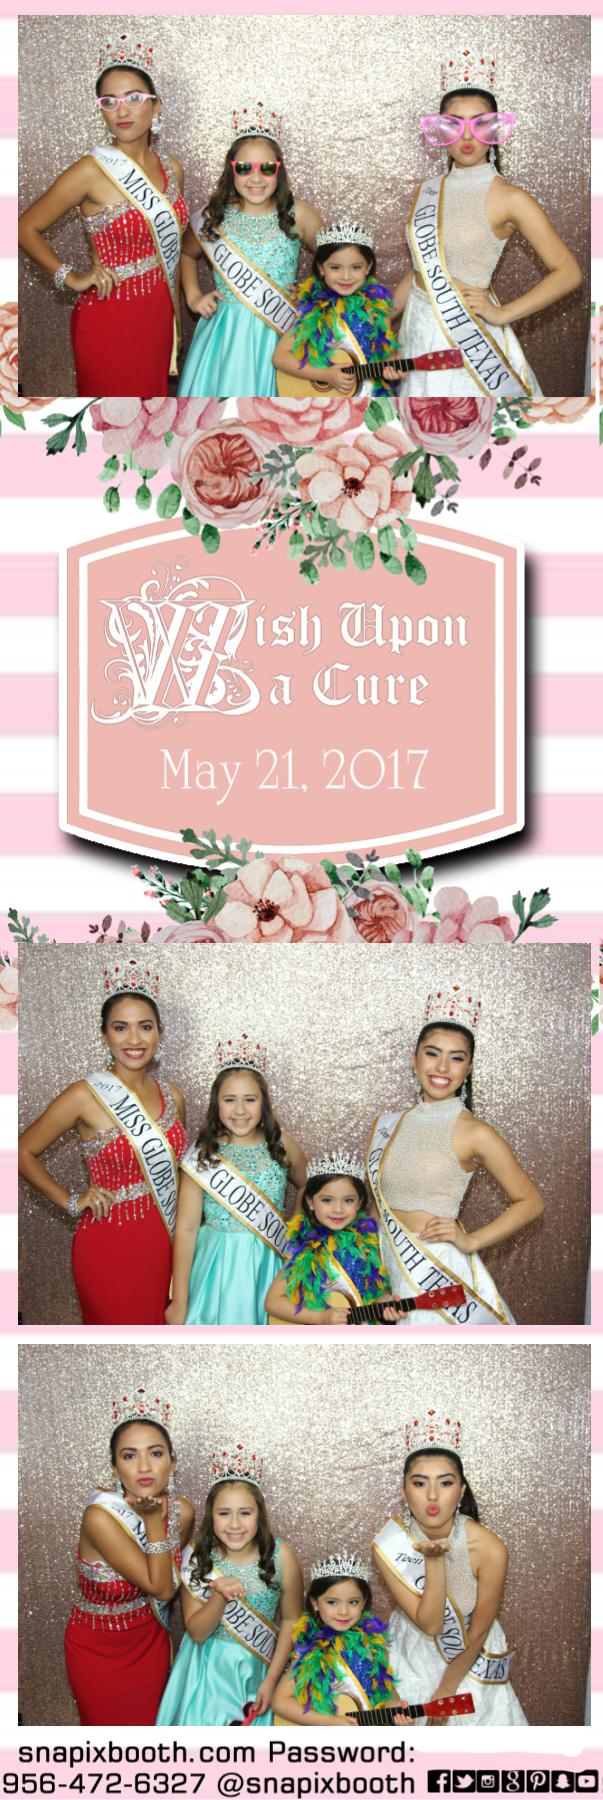 Wish Upon a Cure Event